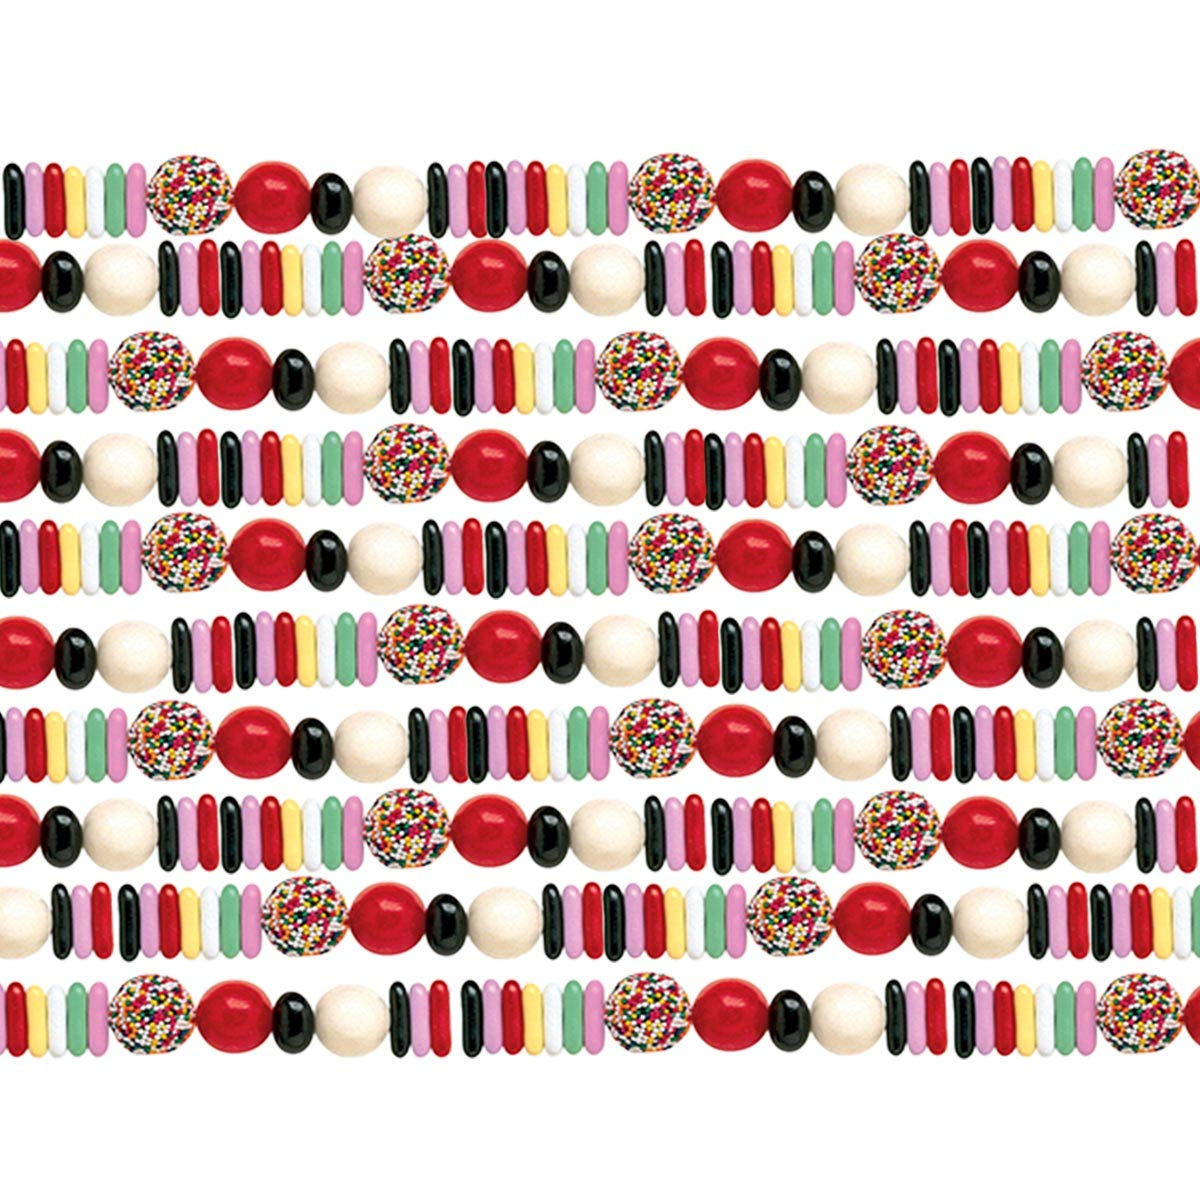 Jelly Belly Licorice Bridge Mix - 10 Pounds of Loose Bulk Candy - Genuine, Official, Straight from the Source by Jelly Belly Confections